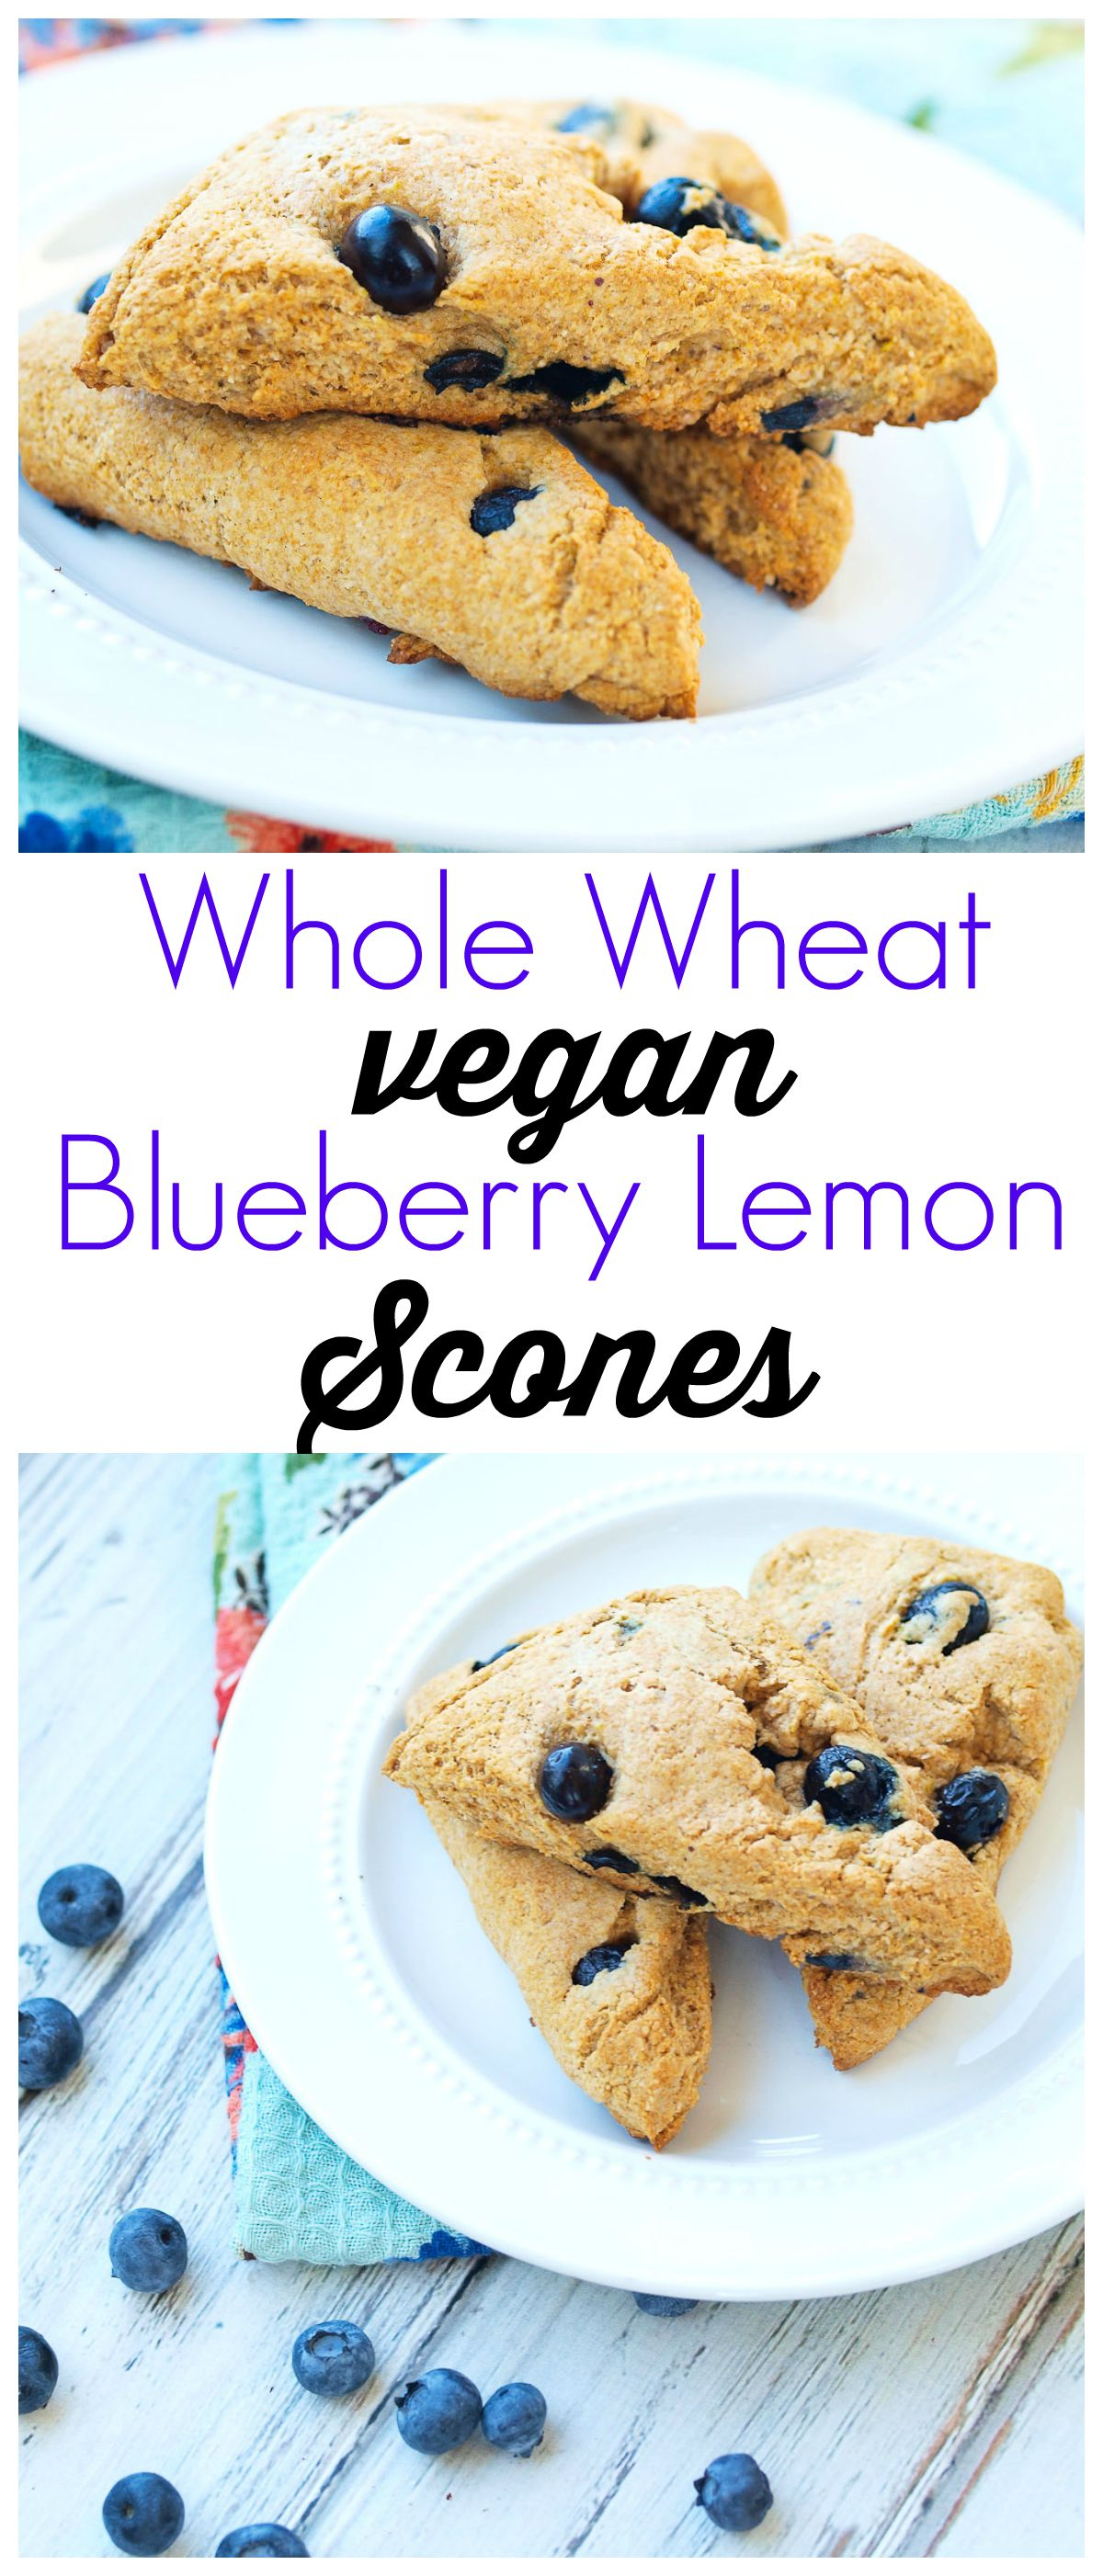 Blueberry Lemon Scones recipe. This is a healthy scone recipe made with whole wheat flour and is also completely vegan. A great breakfast treat!